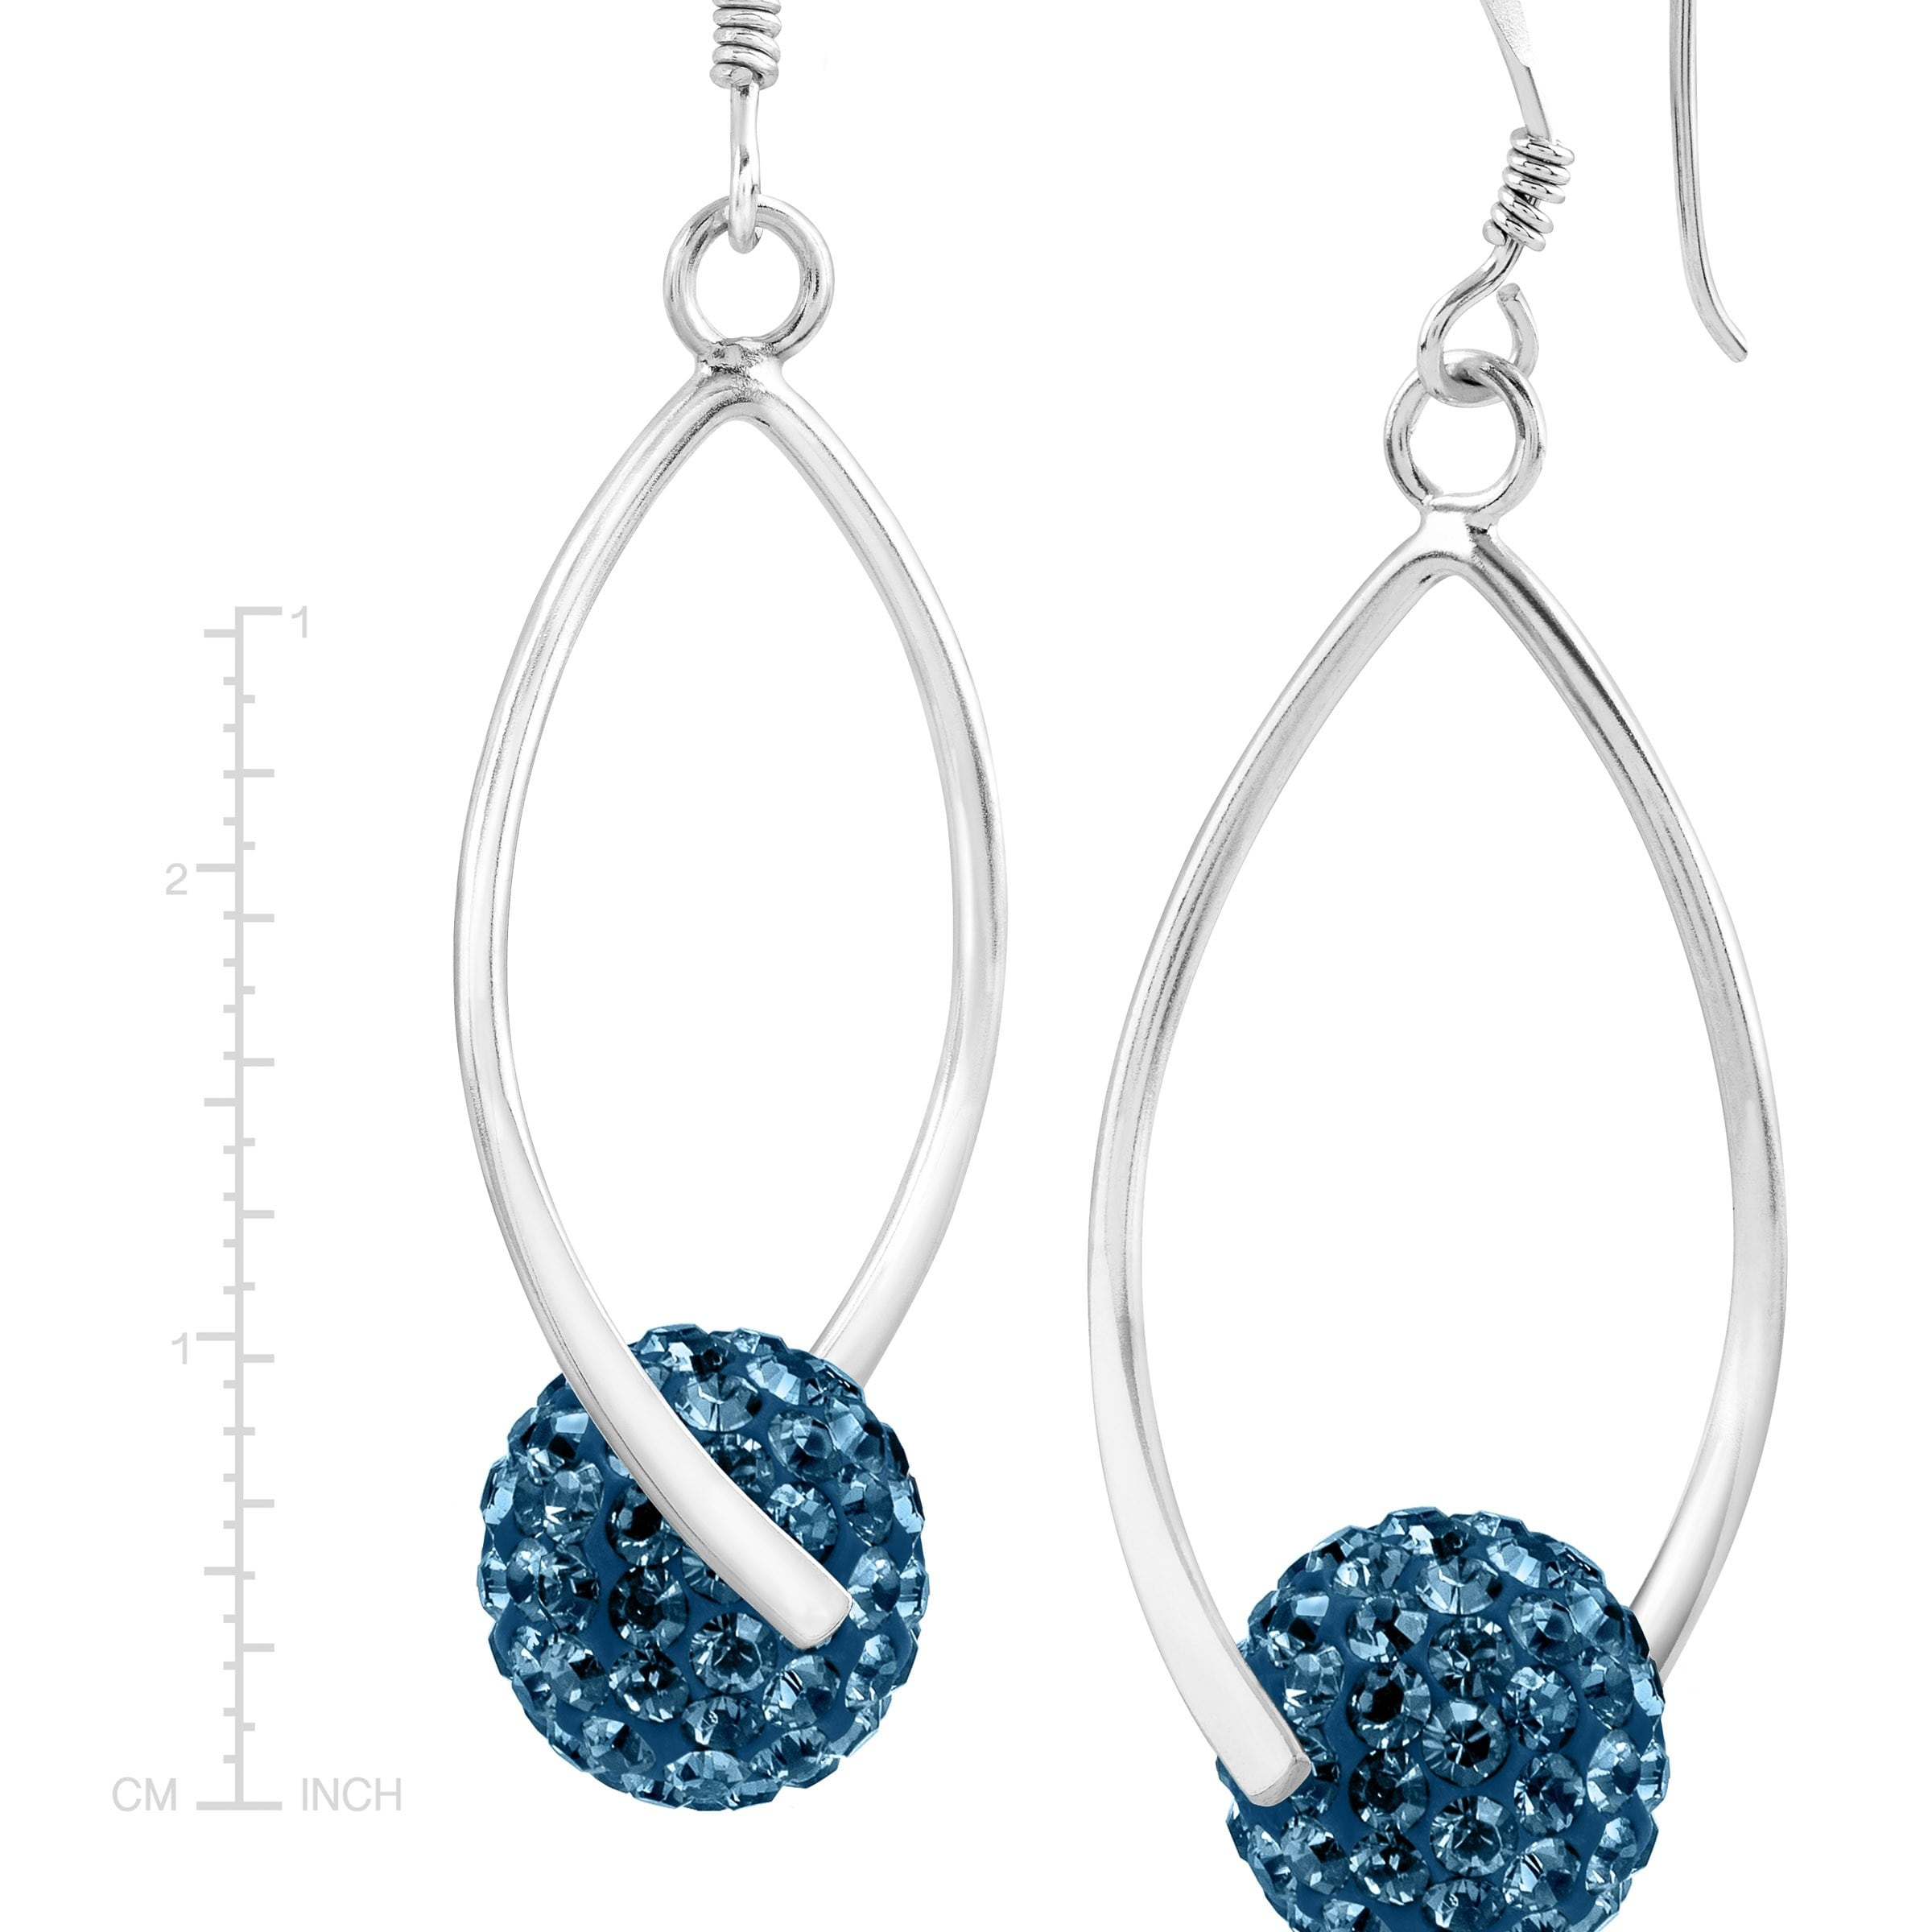 2f2b403a7c8e9 Crystaluxe Twisted Ball Drop Earrings with Swarovski Crystals in Sterling  Silver